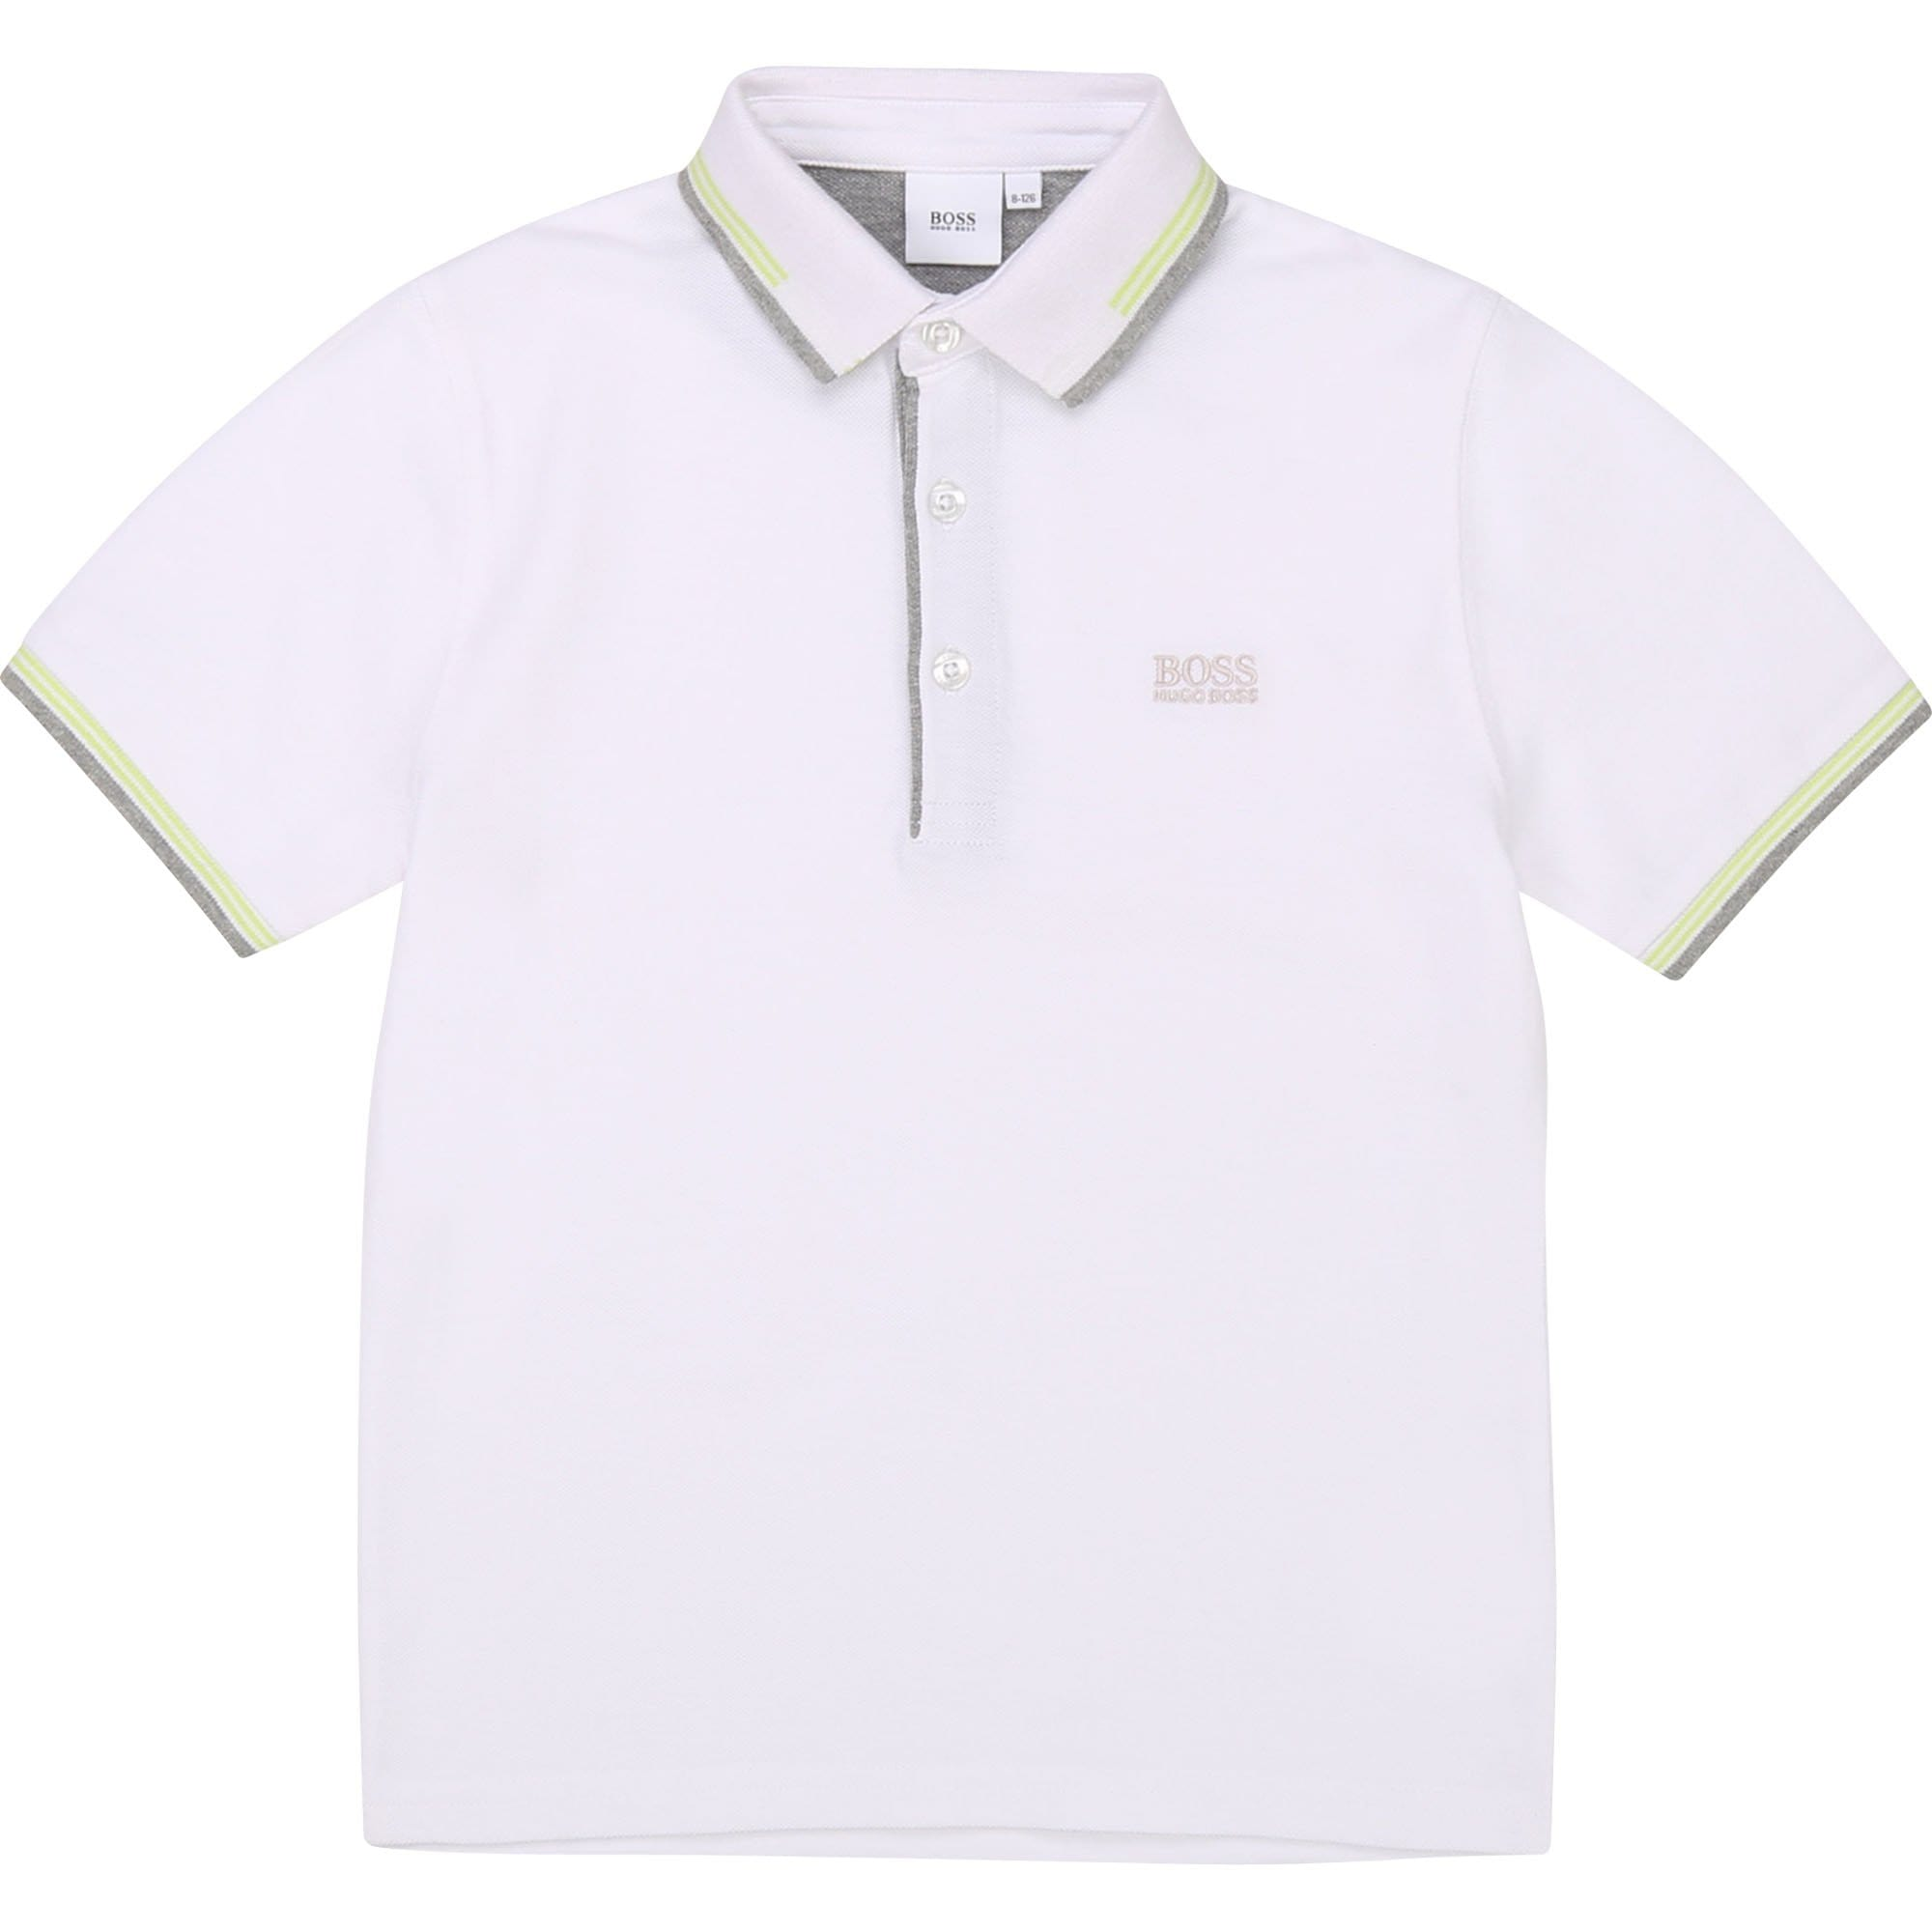 Hugo Boss - Polo Top - White